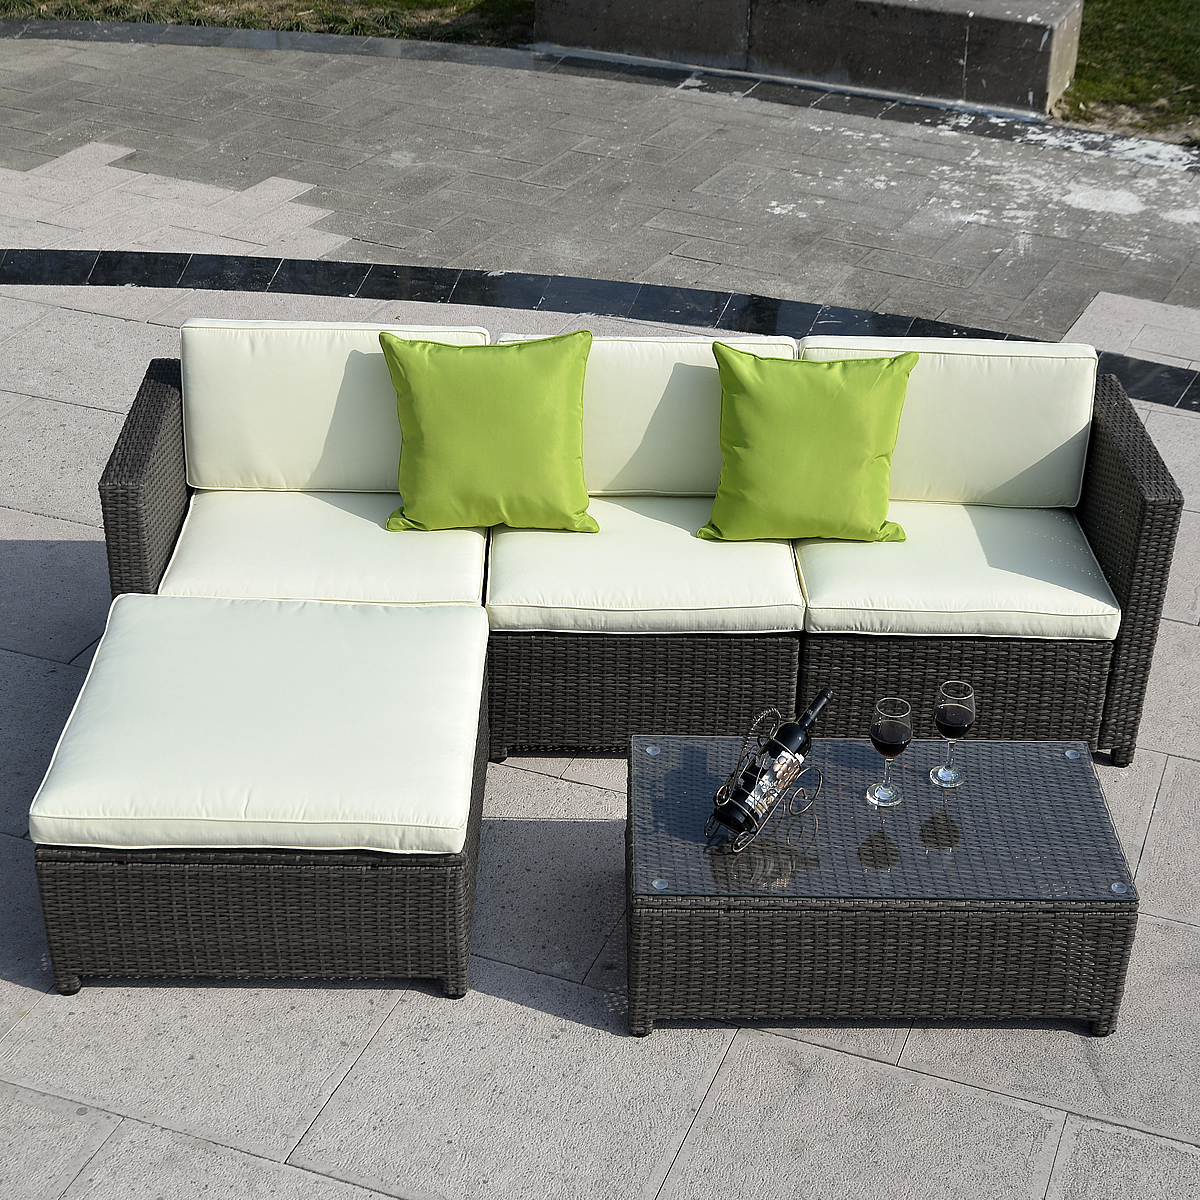 Goplus Outdoor Patio 5pc Furniture Sectional Pe Wicker Rattan Sofa